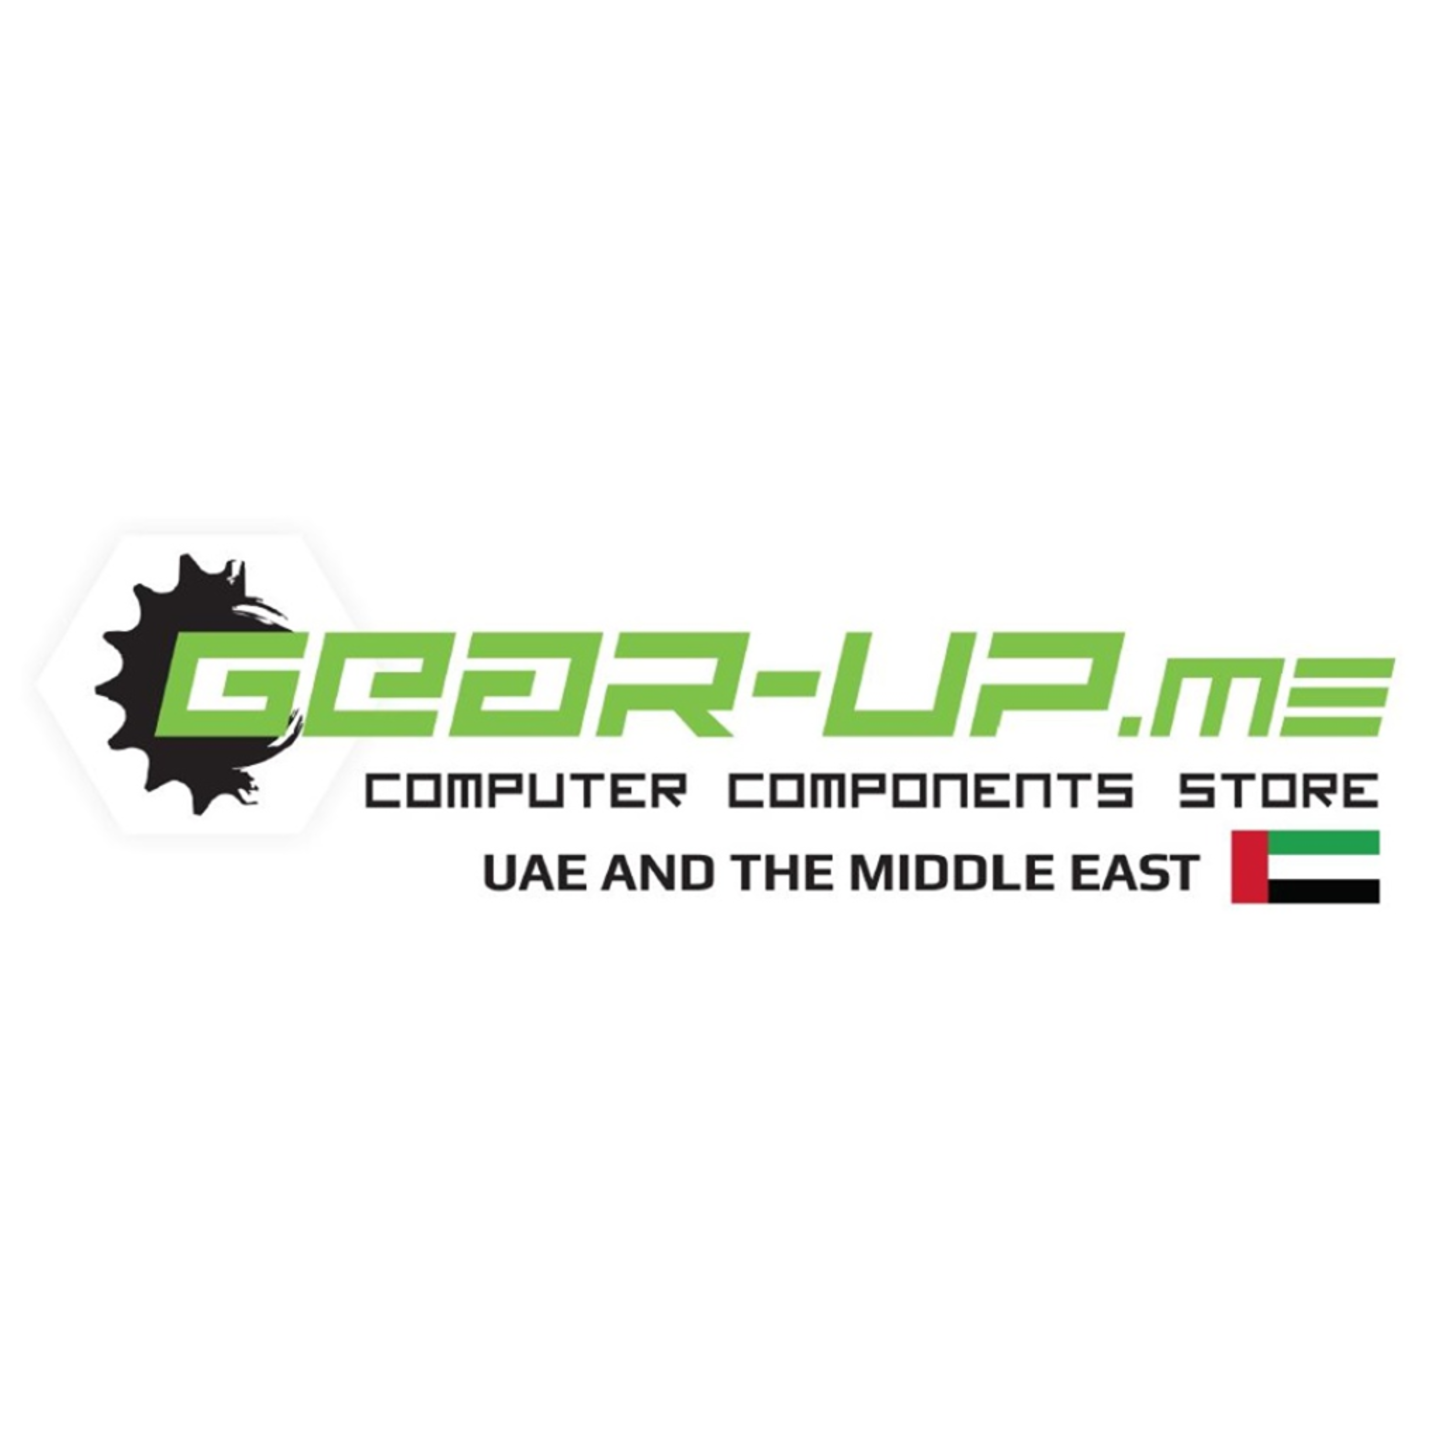 HiDubai-business-gear-up-media-marketing-it-websites-portals-al-barsha-1-dubai